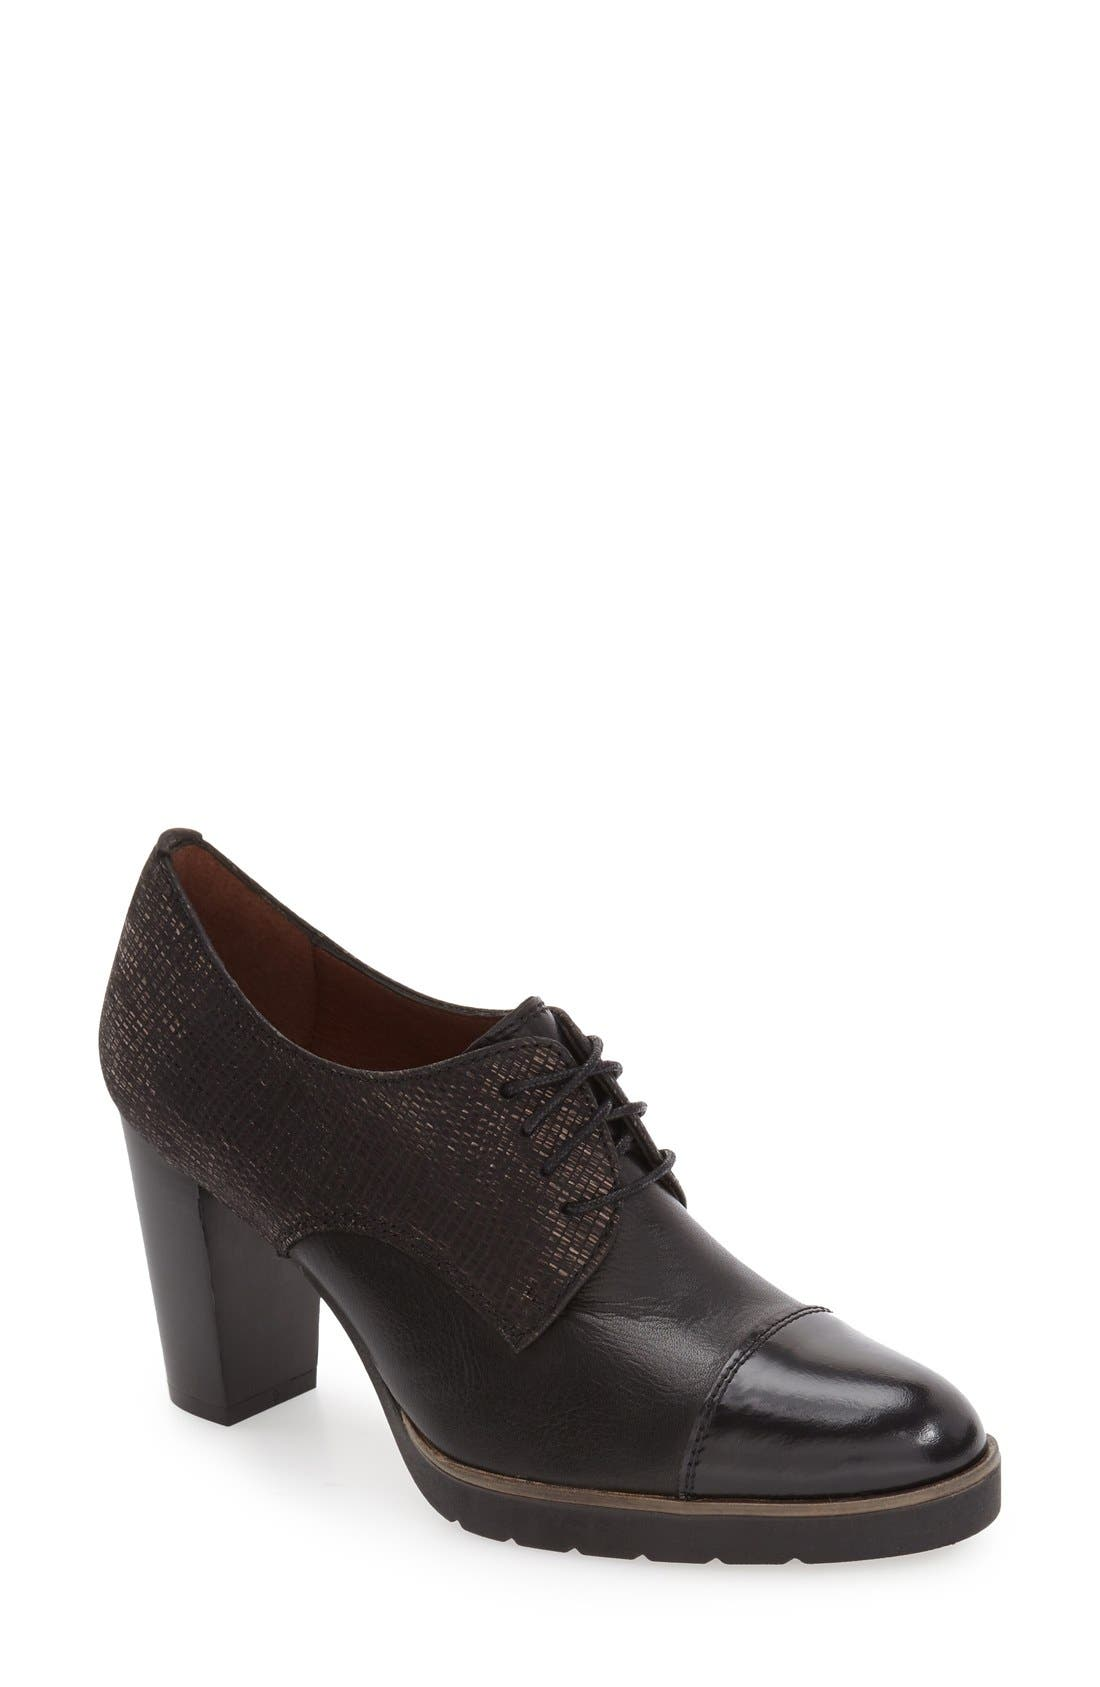 'Viv' Cap Toe Pump,                         Main,                         color, BLACK LEATHER